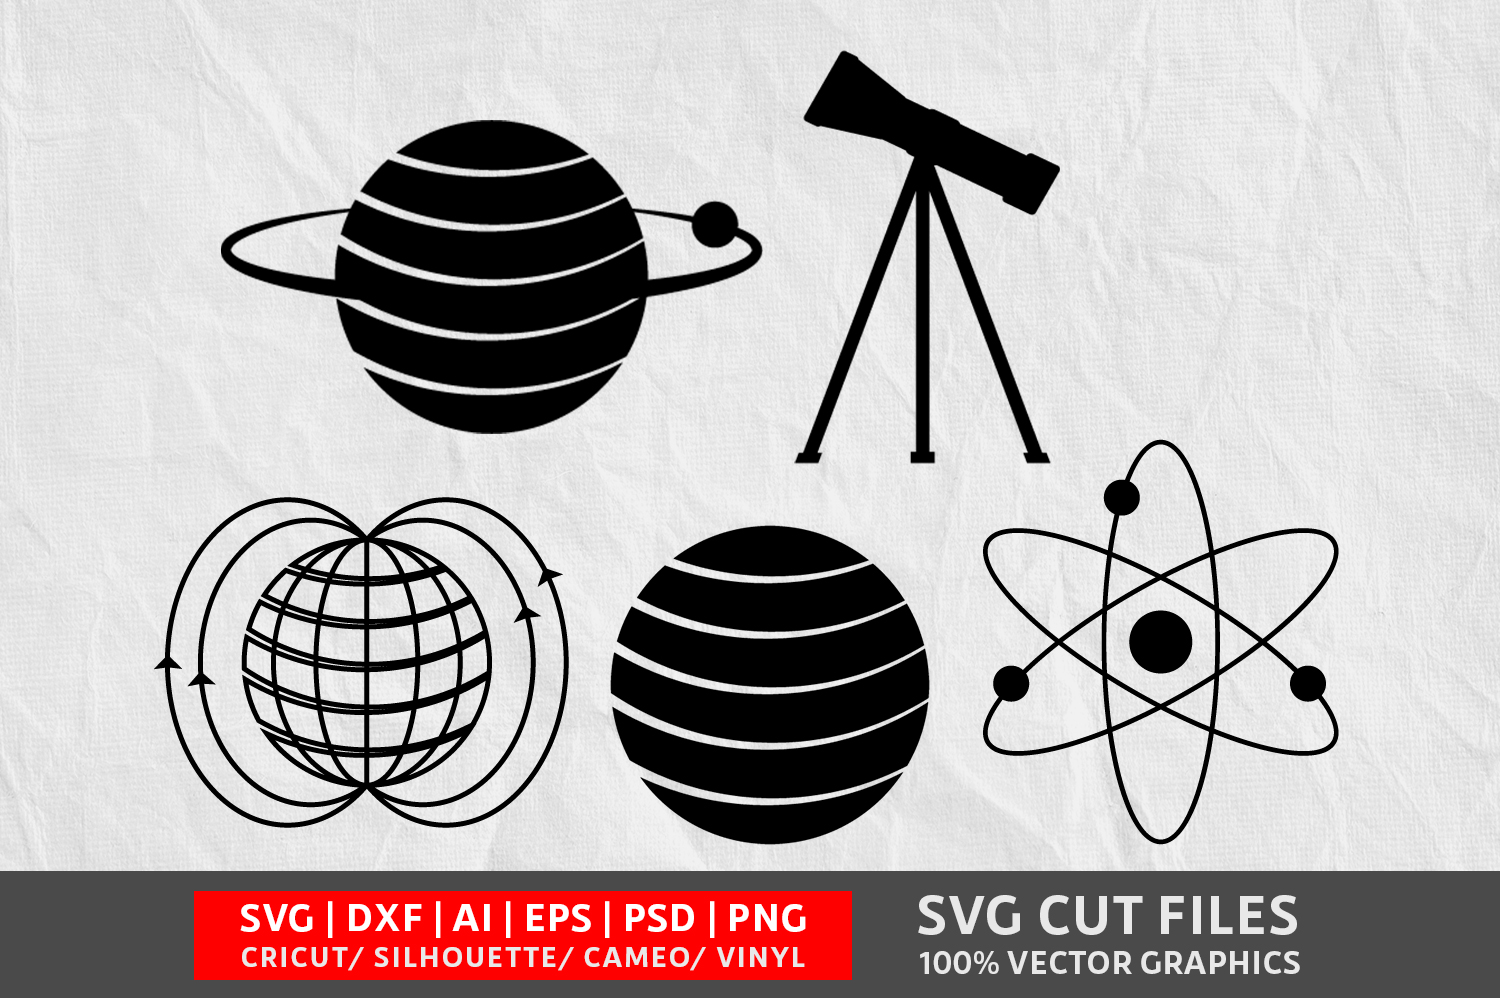 Download Free Science Image Graphic By Design Palace Creative Fabrica for Cricut Explore, Silhouette and other cutting machines.